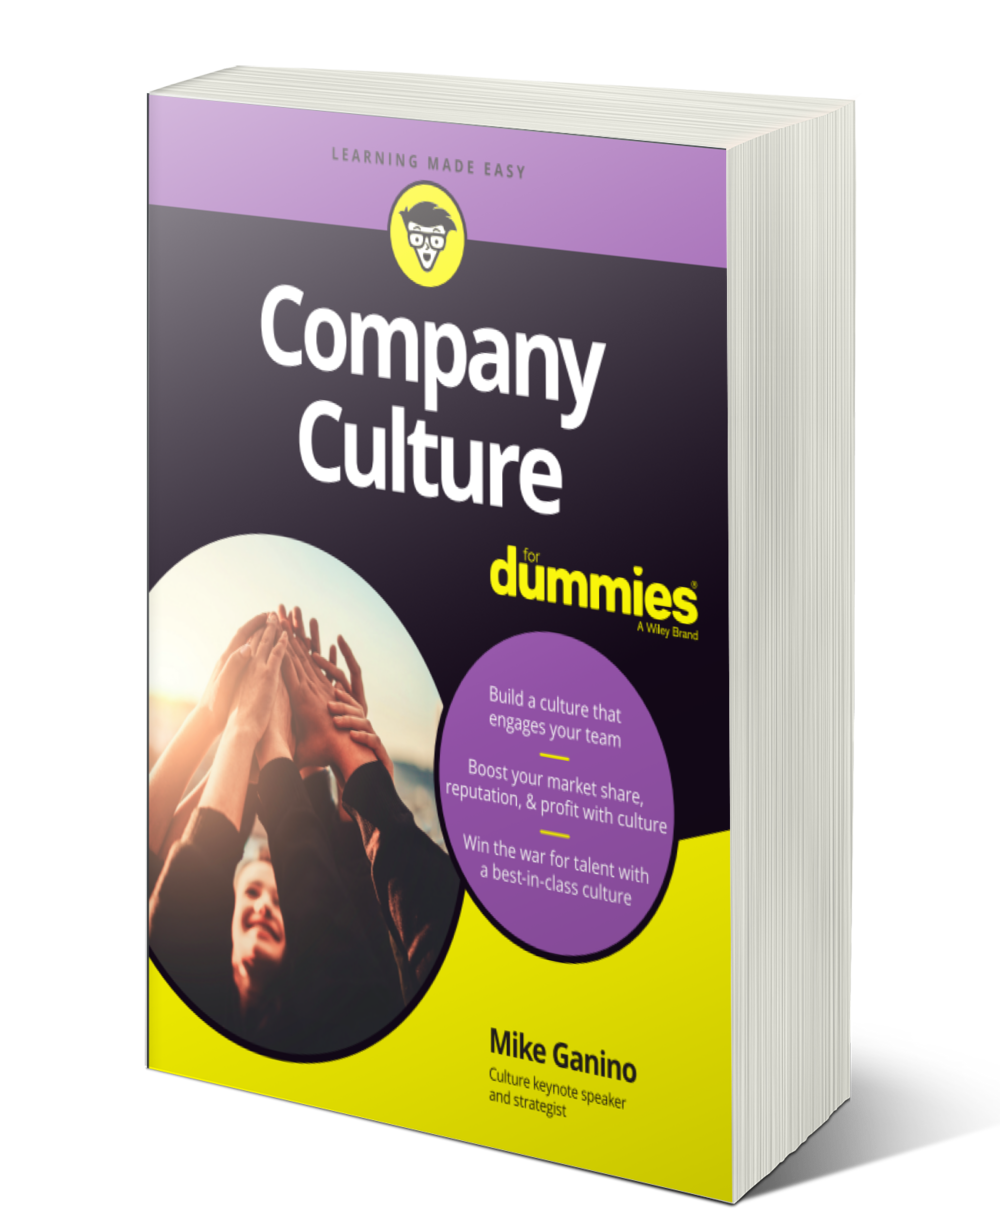 "Mike's book is out now  - Make a difference with company cultureOrganizations around the world are looking for the ""secret sauce"" to create strong company cultures—and this book lets you in on what you can do to share the same culture that drives places like Google, Southwest, and Wegman's to succeed.Inside, expert author on corporate culture Mike Ganino distills company culture down to the four core elements that you need to consider when making any business decision. Packed with real-world examples and practical approaches to help you build a culture that drives performance, increases bottom line results, and creates brands that people talk about and remember, this is the book you'll want to keep close by as you create your own unique culture.With this helpful guide, you'll boost your company's culture in no time!"